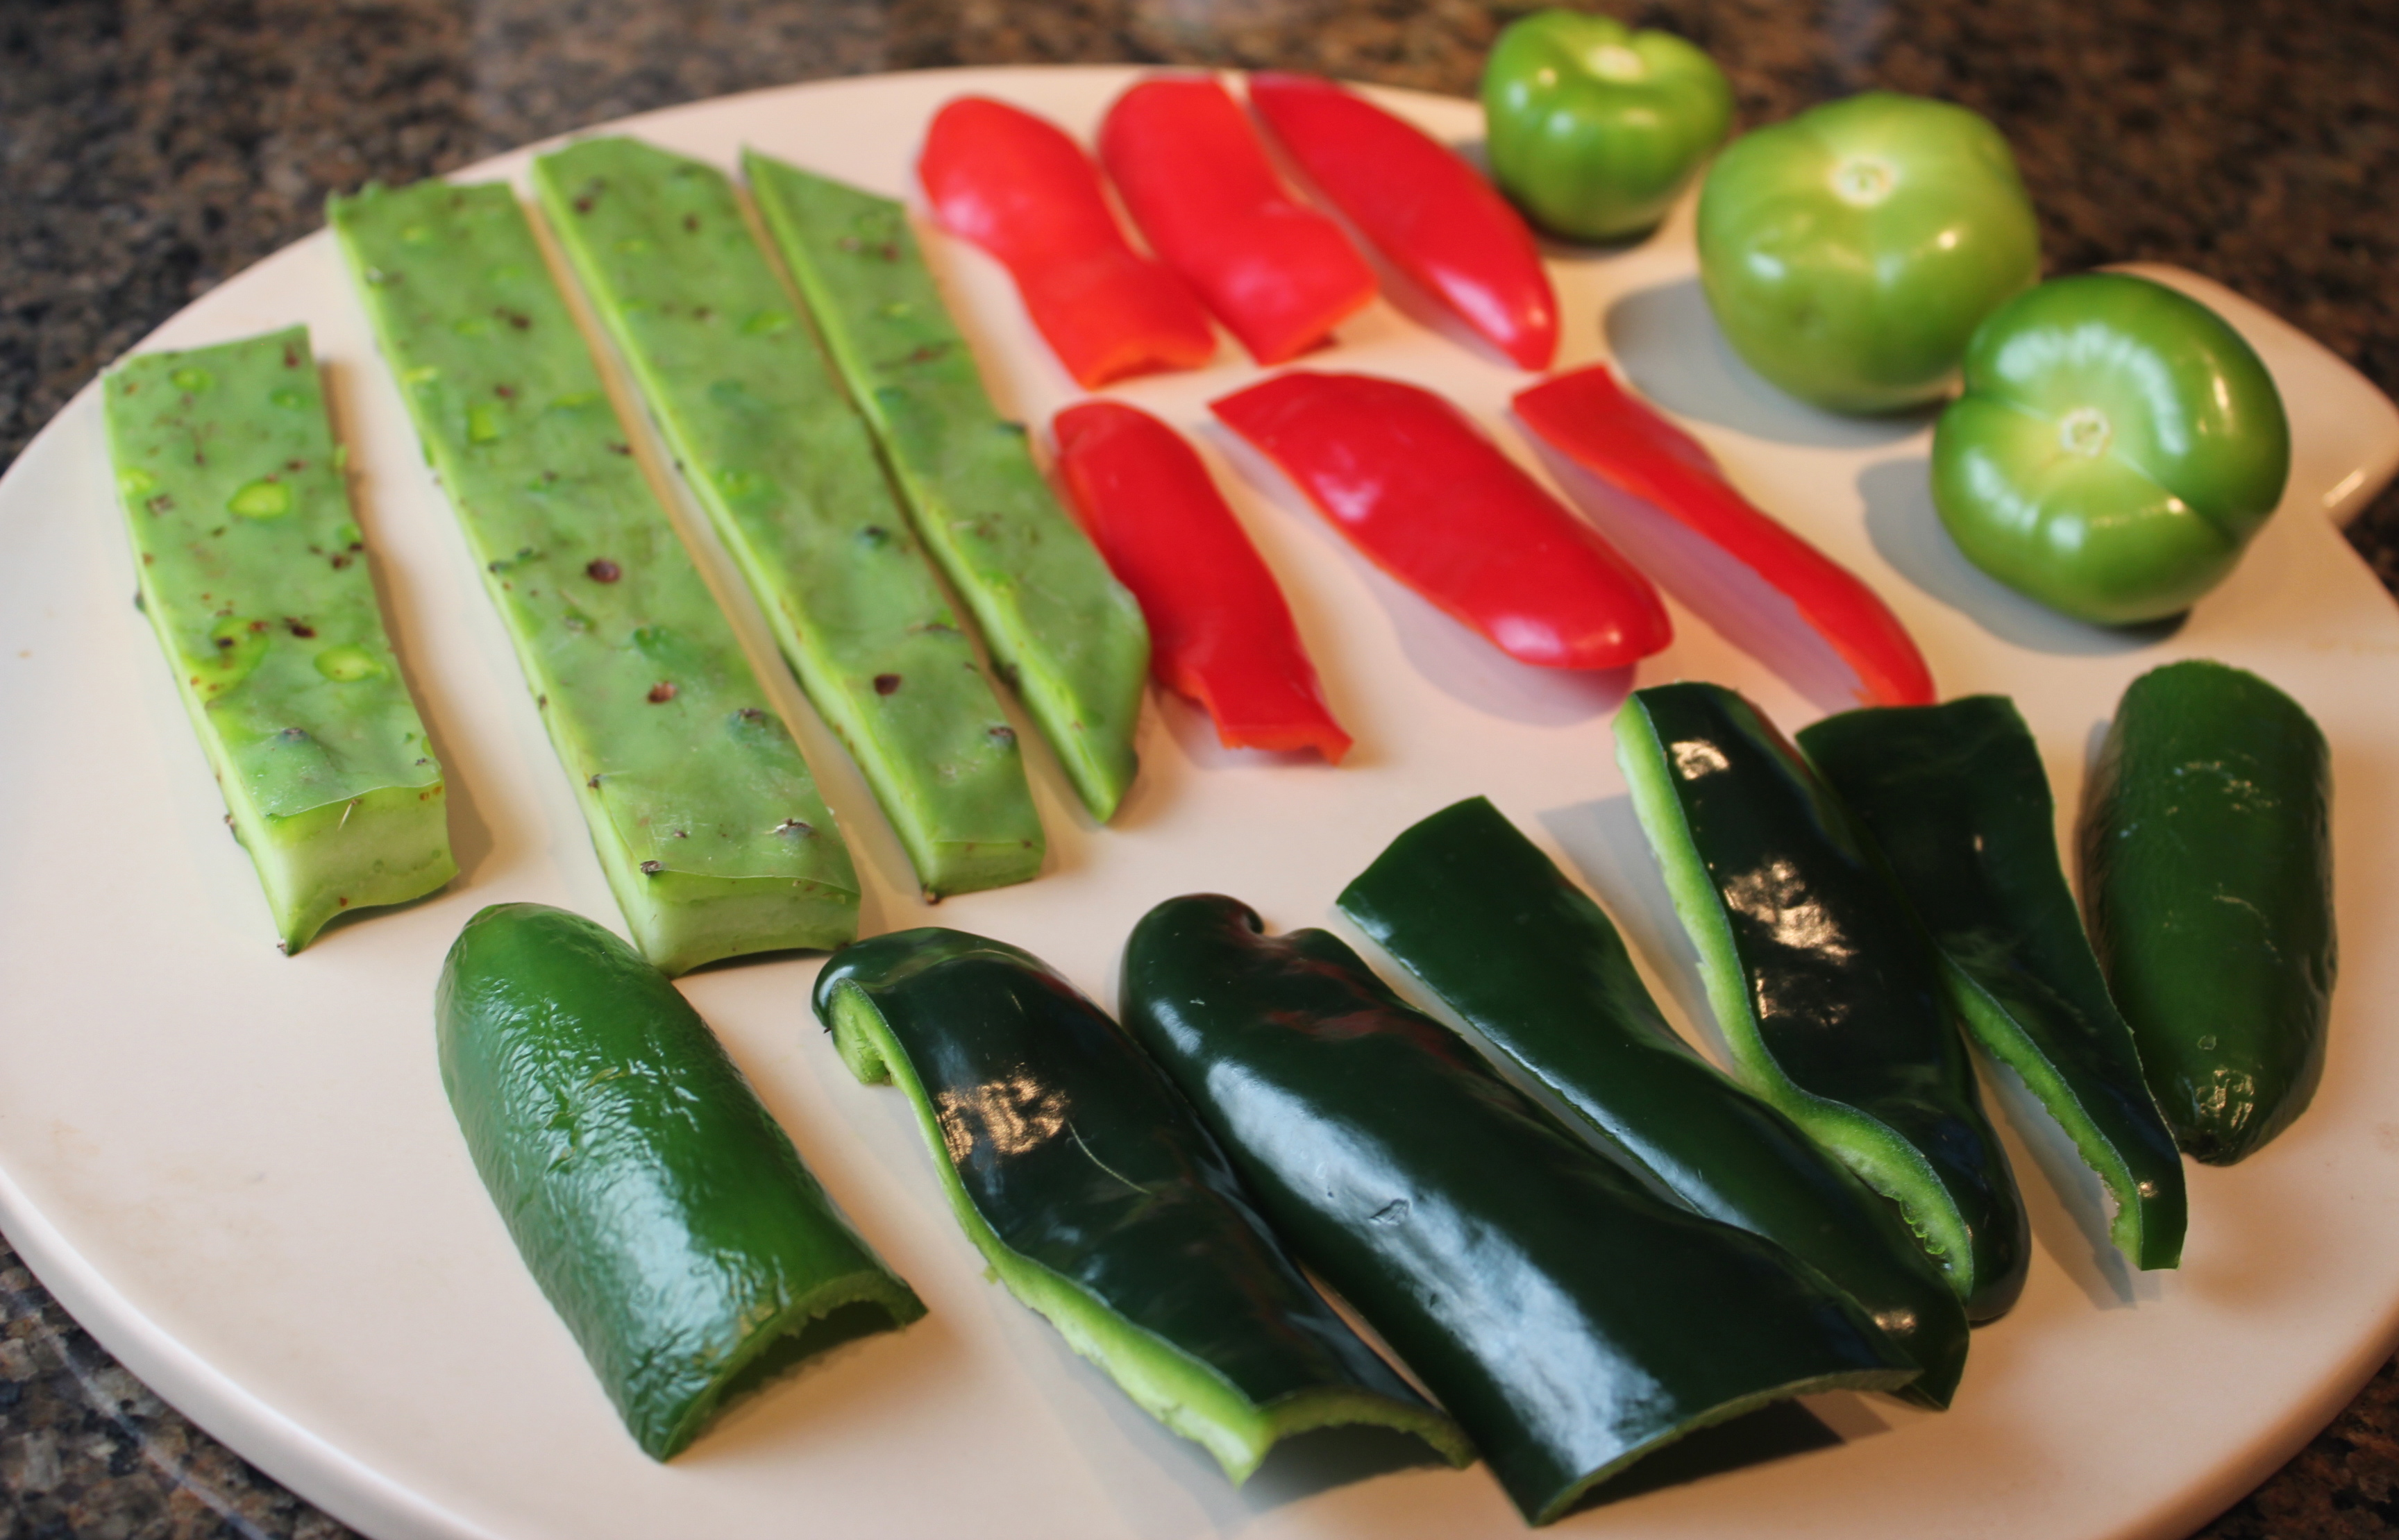 roasted poblano chilies, roasted jalapeños, roasted tomatillos, roasted red pepper, roasted cactus, roasting vegetables, oven roasted chilis, oven roasted peppers